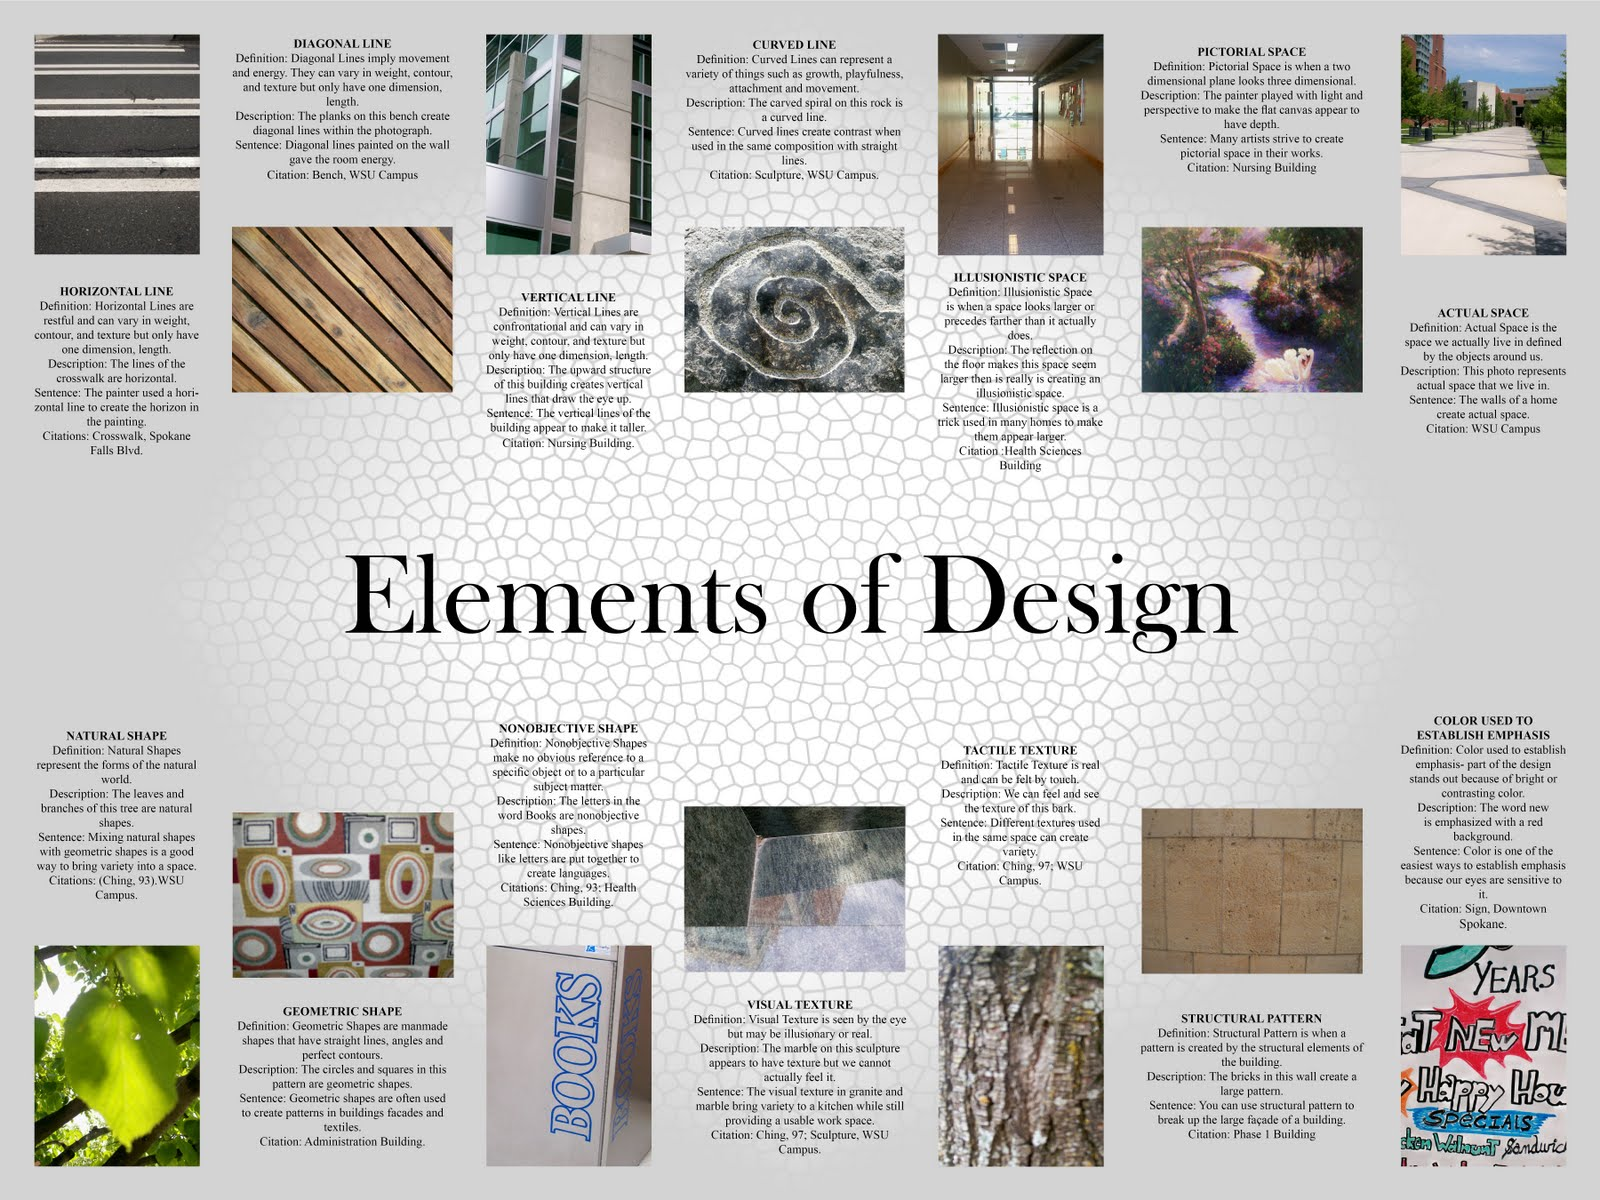 Copy Of Elements Principles Of Design